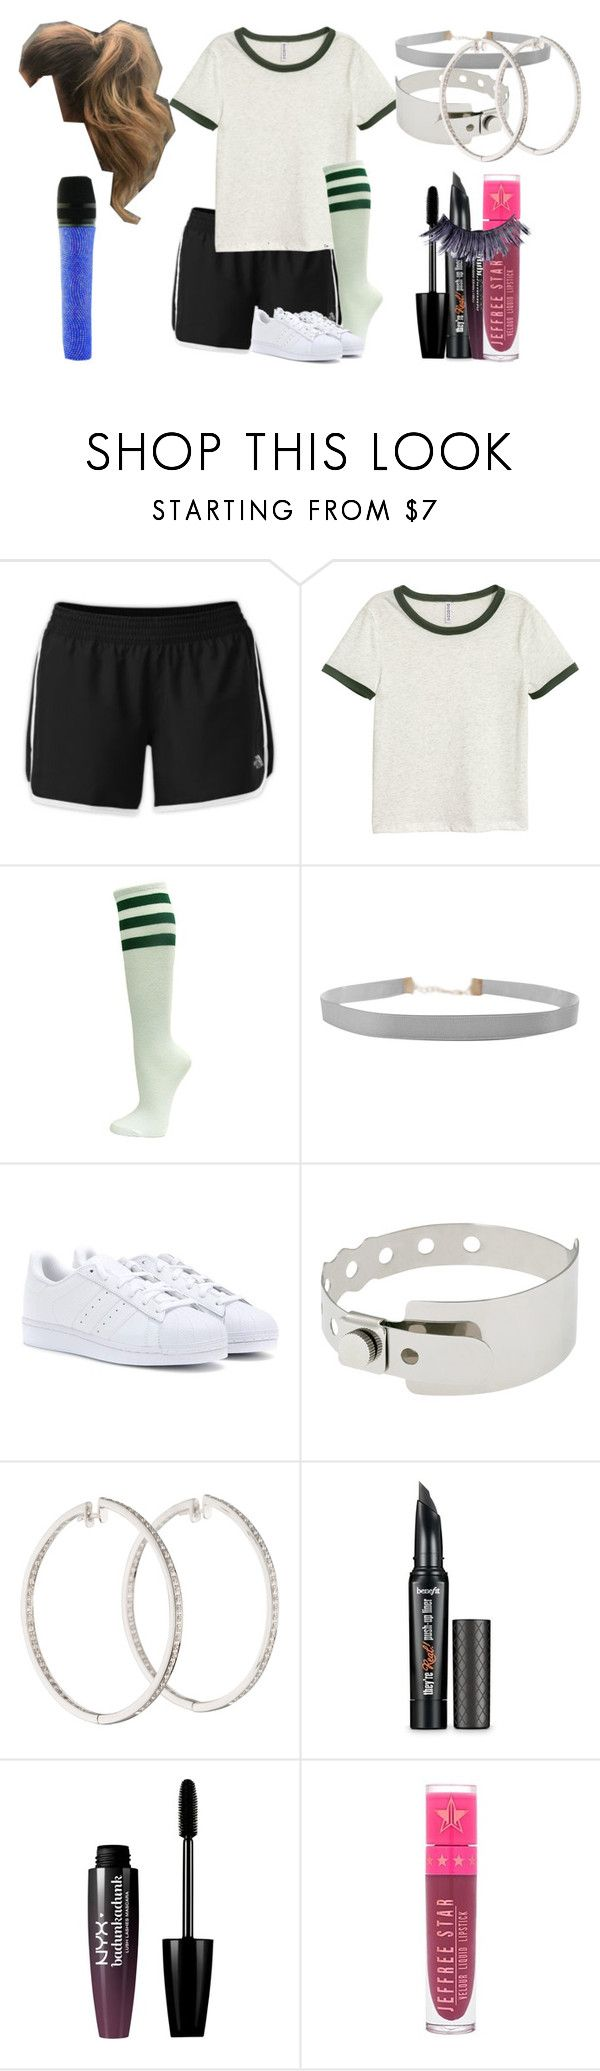 """Lillian Lockstar In ""Russian Roulette"""" by shestheman01 ❤ liked on Polyvore featuring The North Face, H&M, Humble Chic, adidas, Cast of Vices, Benefit, NYX, Swarovski, Jeffree Star and Manic Panic NYC"